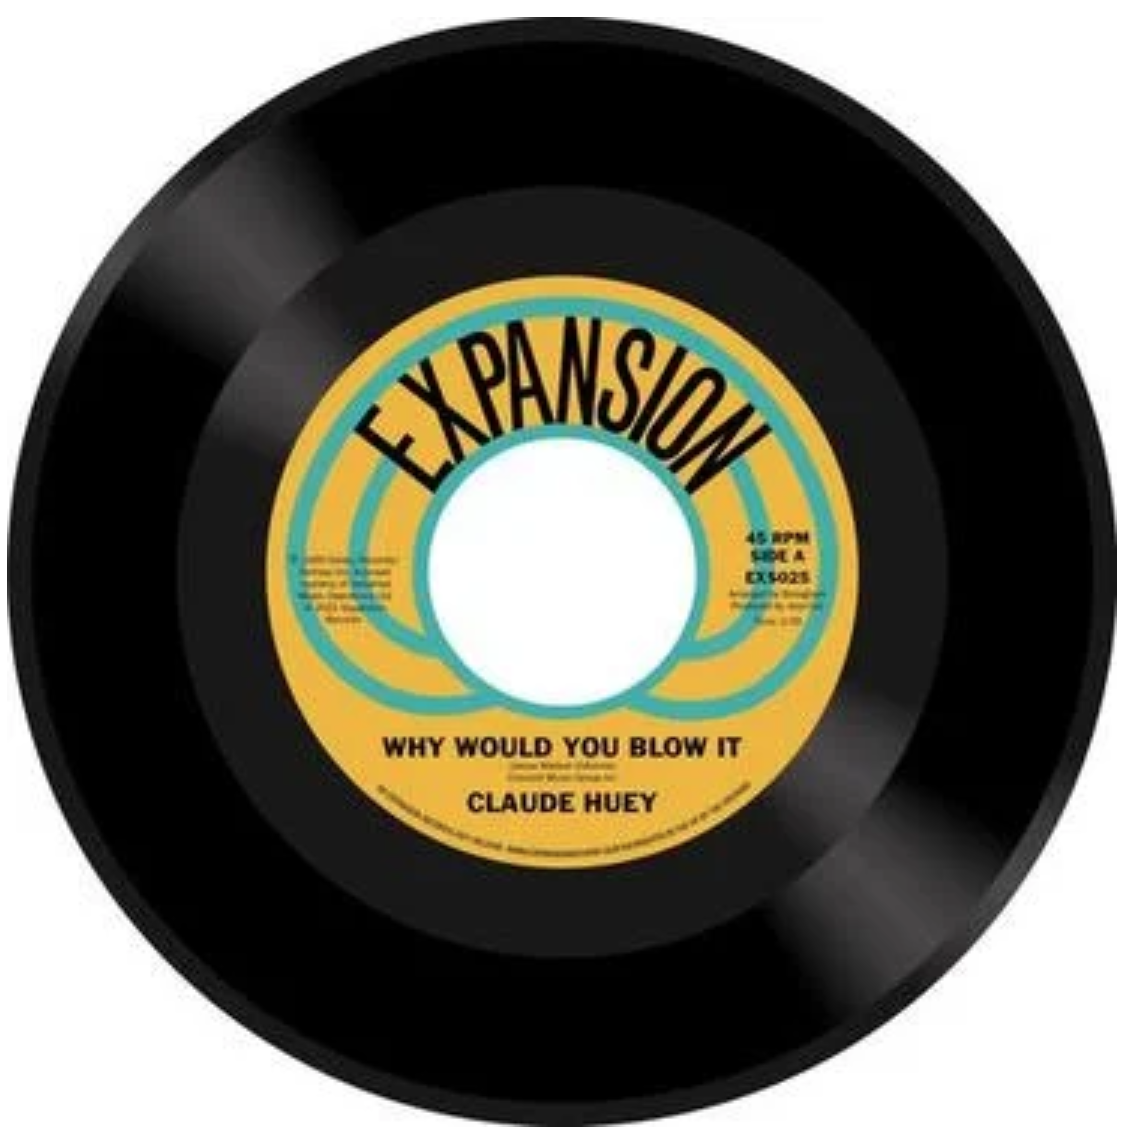 Expansion Records Claude Huey - Why Would You Blow It / Why Did Our Love Go